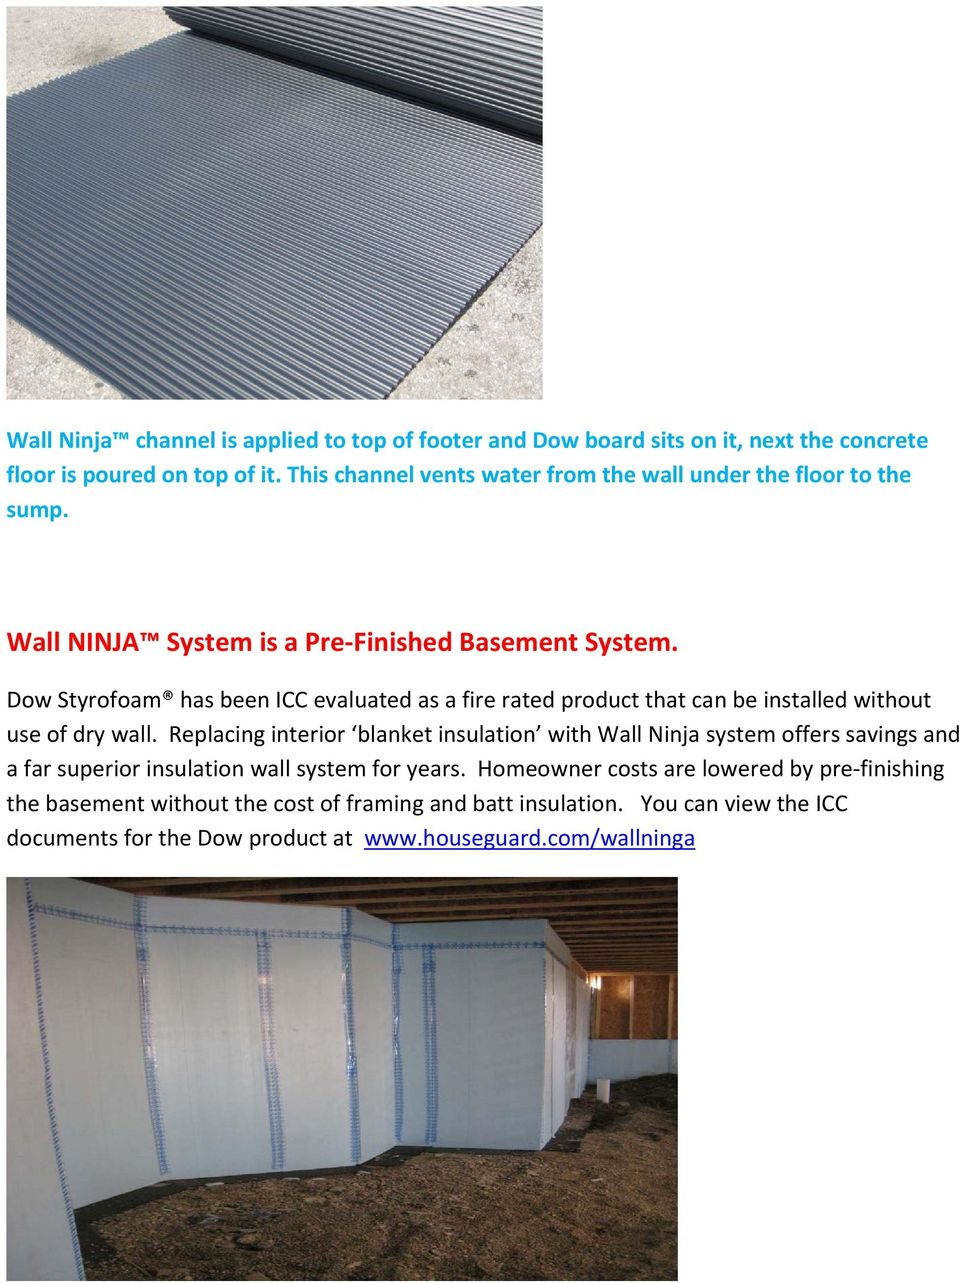 Dow Styrofoam has been ICC evaluated as a fire rated product that can be installed without use of dry wall.